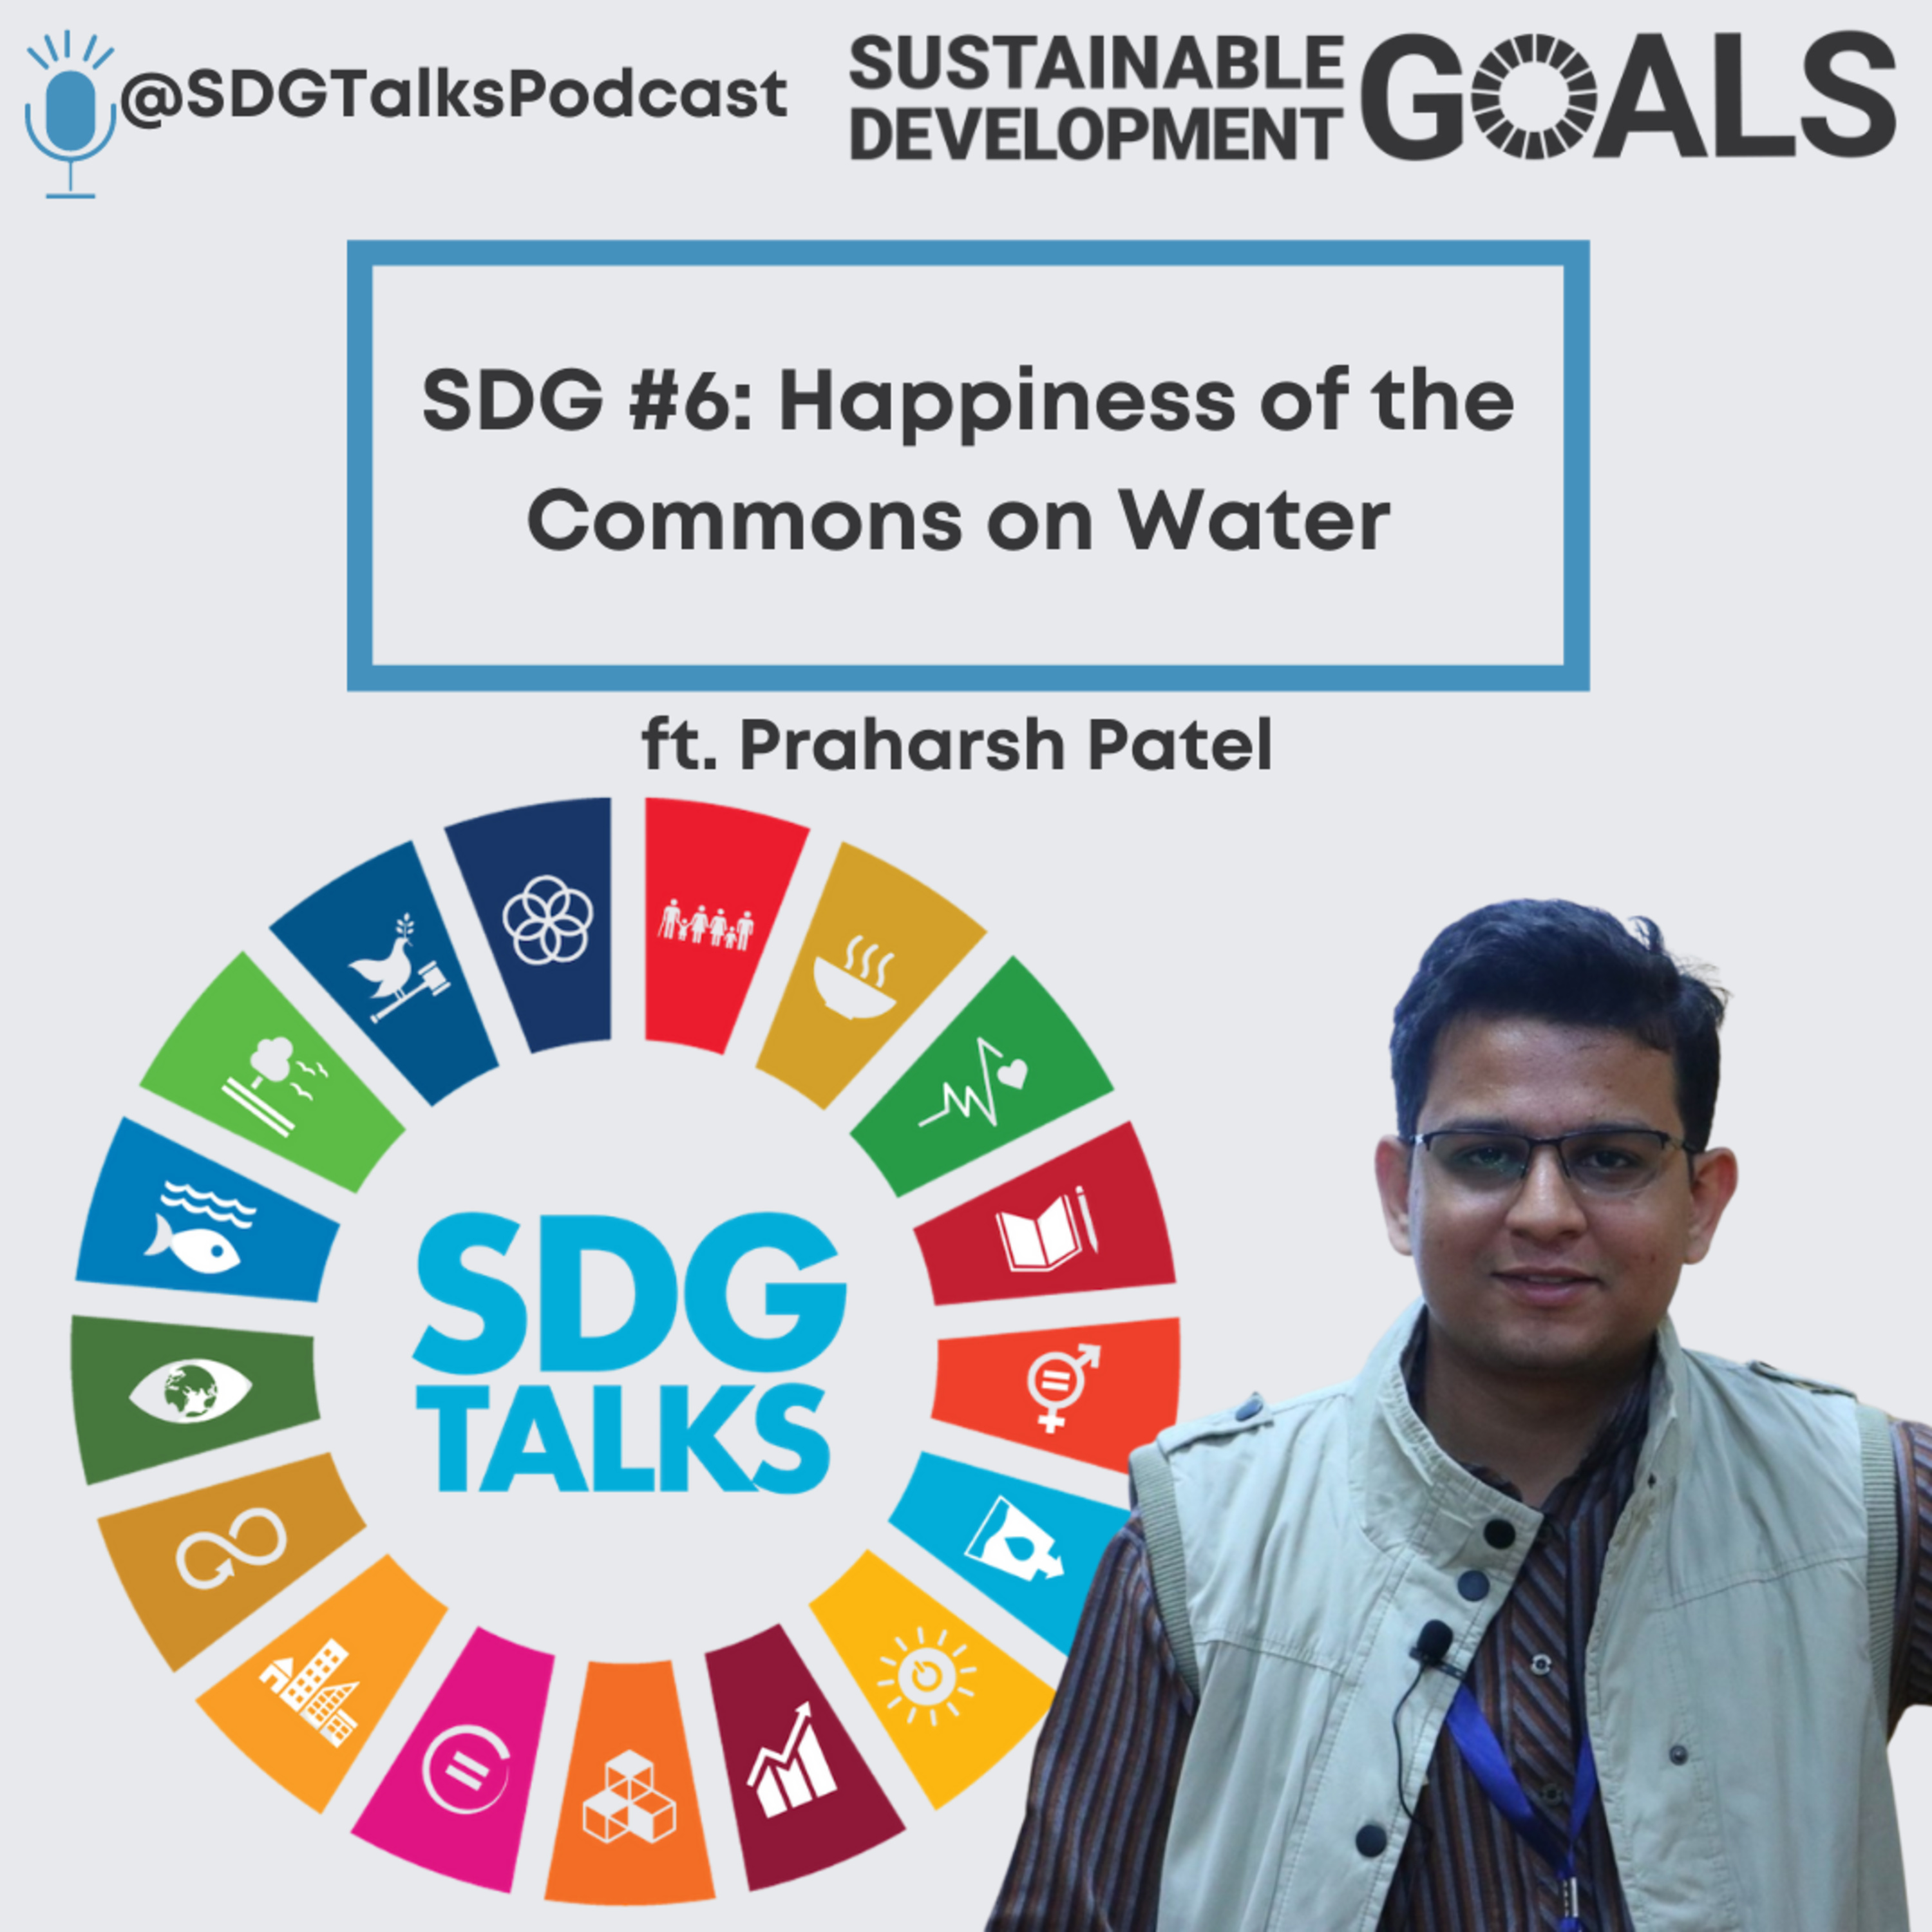 SDG #6 - Happiness of the Commons on Water with Praharsh Patel